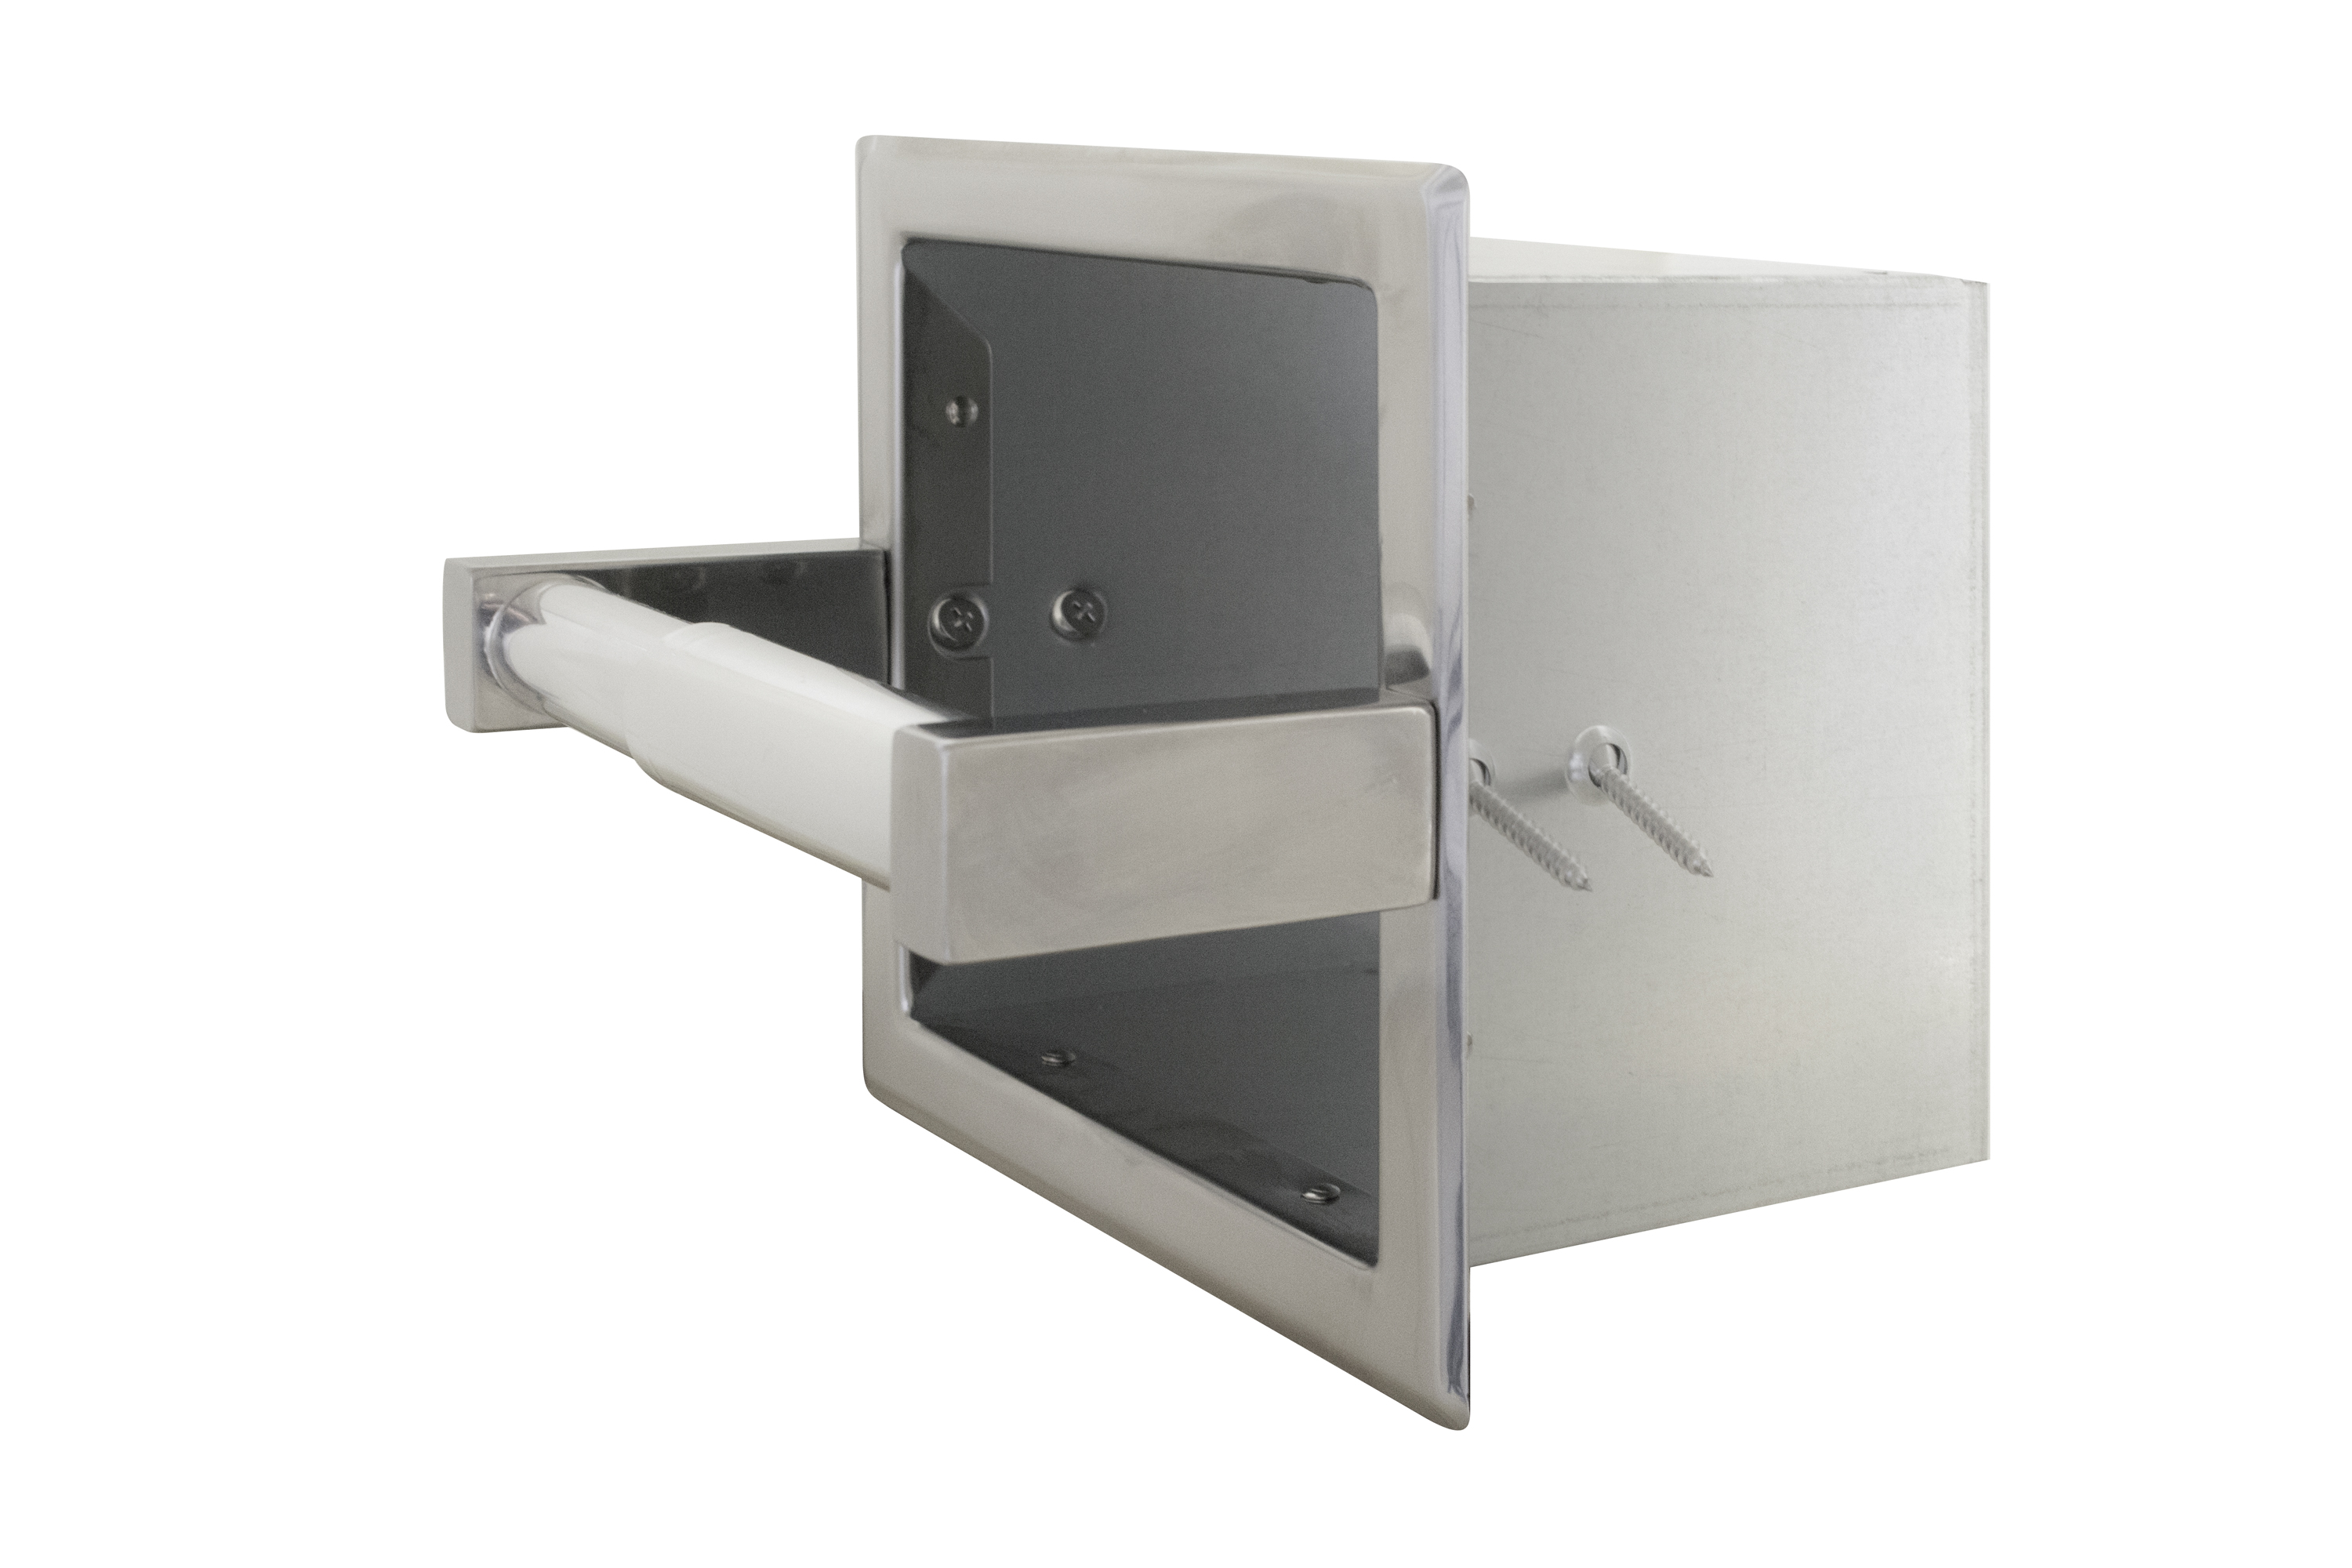 Recessed single roll toilet tissue dispenser with spare roll bradley corporation - Recessed toilet paper dispenser ...